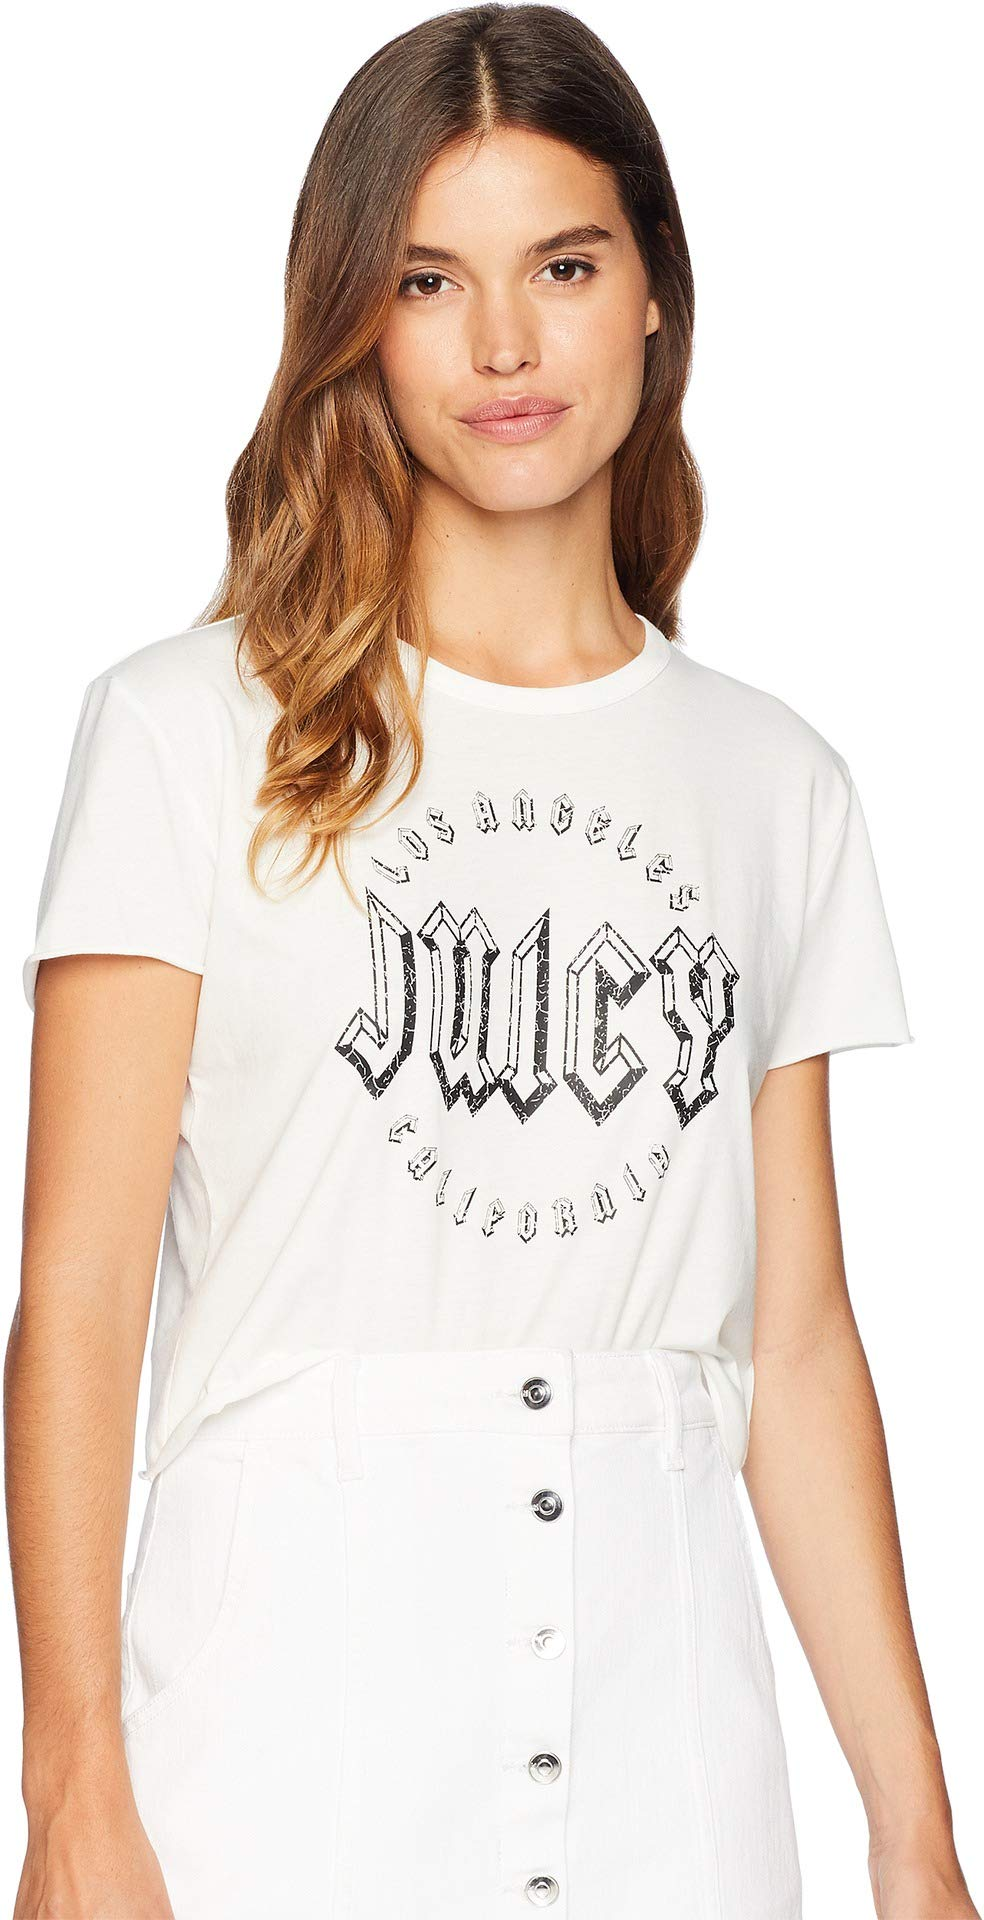 Juicy Couture Women's Knit JXJC Embellished Logo Graphic Tee Bleached Bone Medium by Juicy Couture (Image #1)